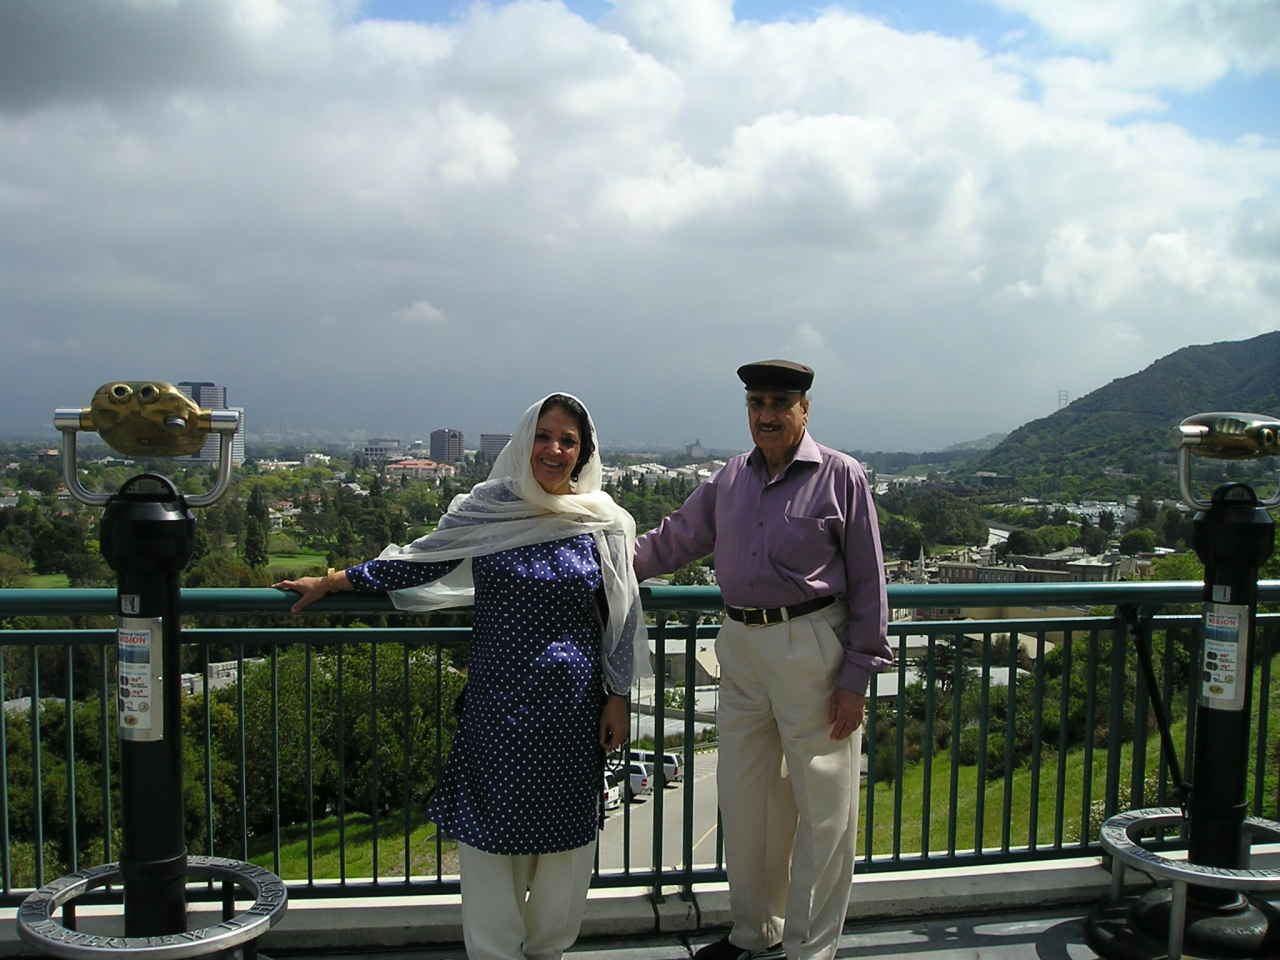 abbottabad city in pakistan history photos wallpaper and